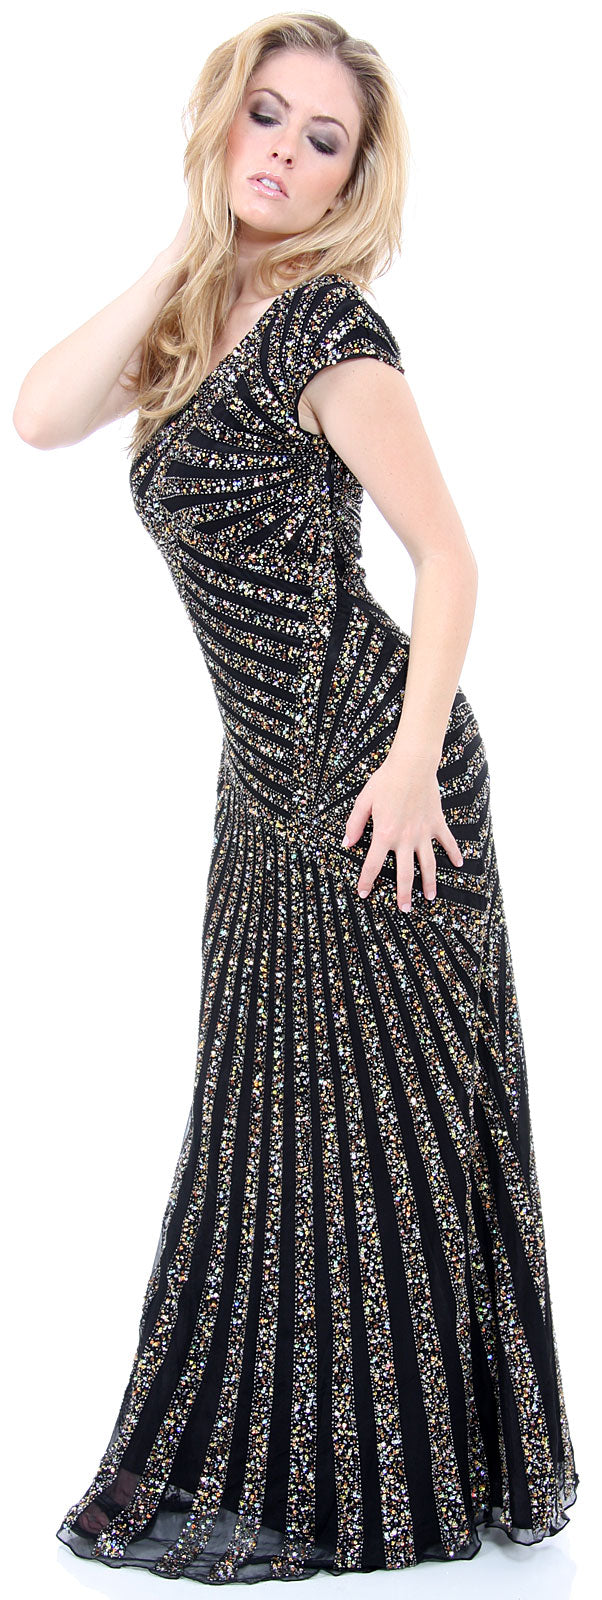 Image of Full Length Sophisticated Sequined Evening Gown in alternative image